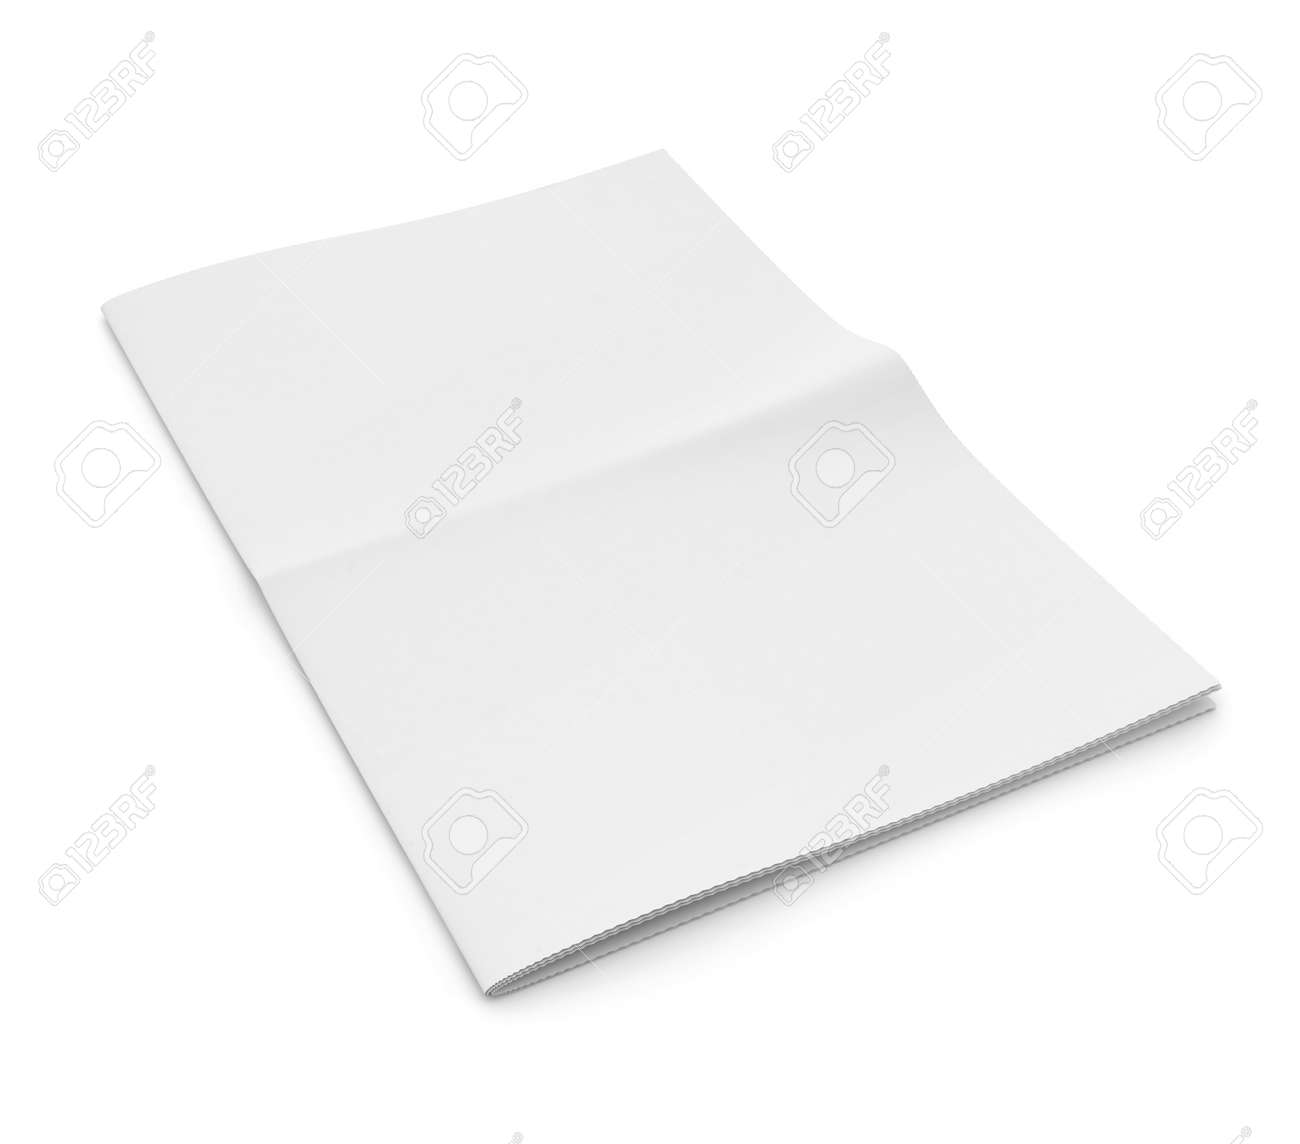 Blank Newspaper On White Background Template For Publishing Stock